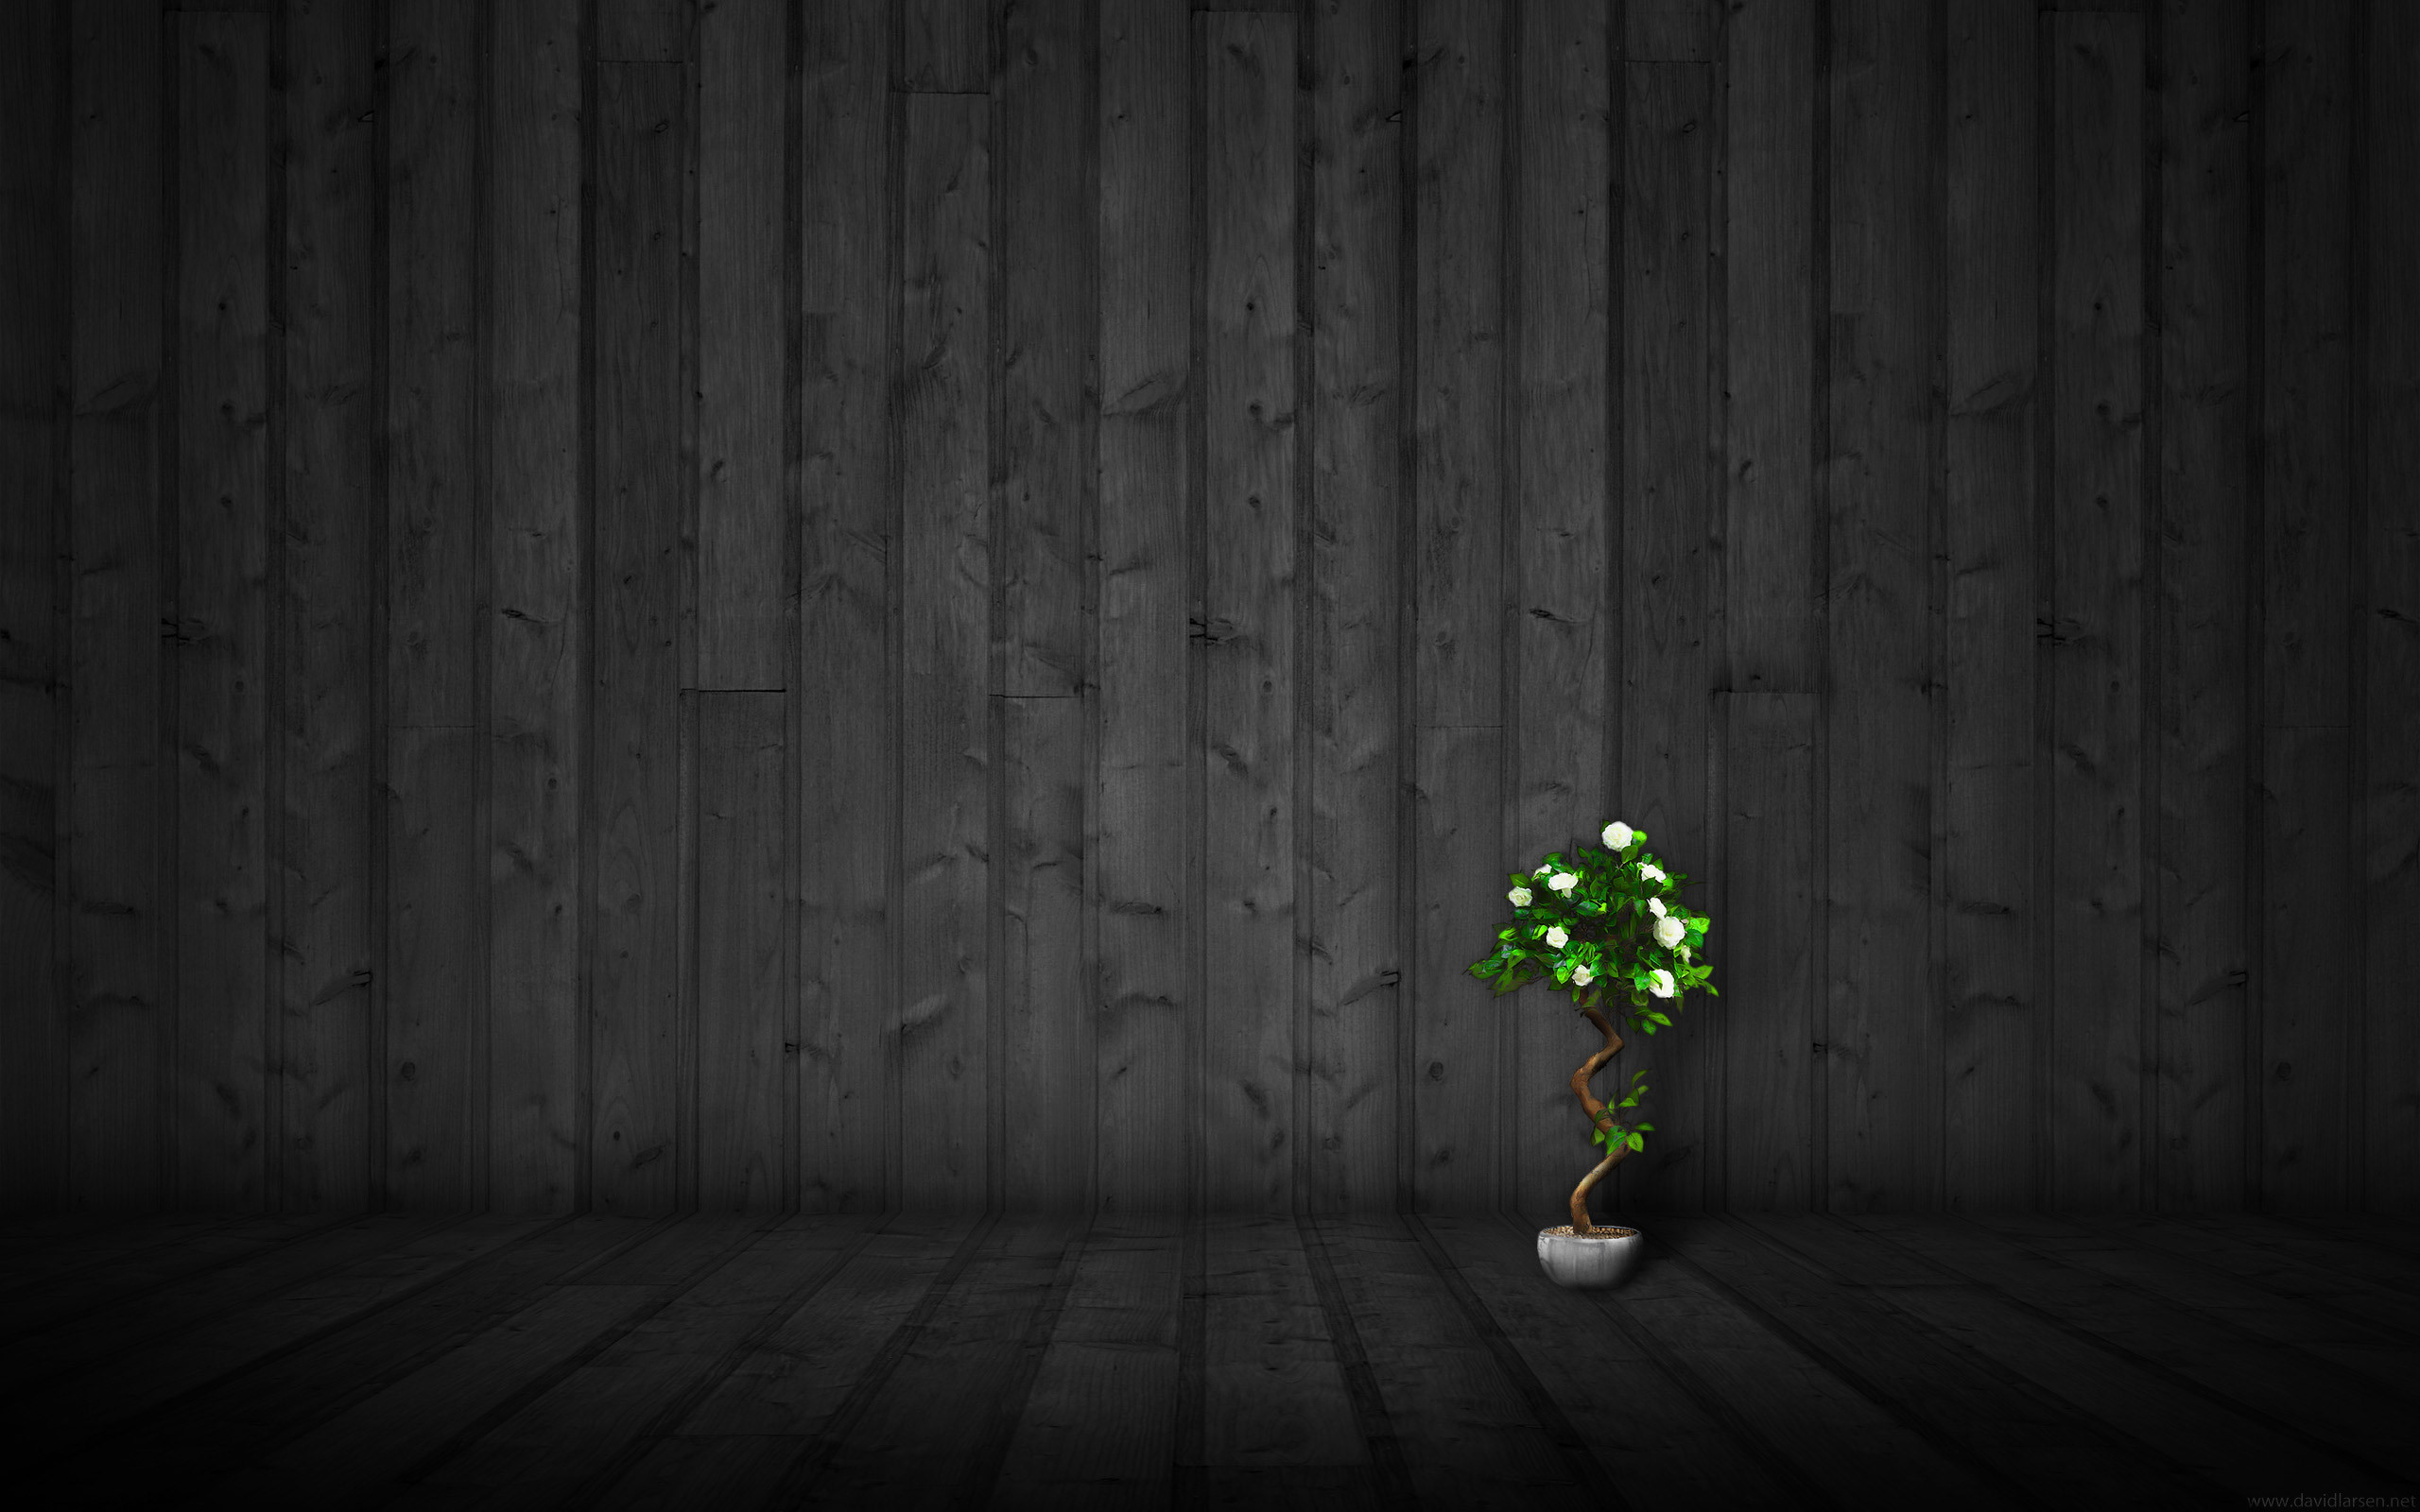 2560x1600 Miraculous Wood Grain Wall For Covering And Wallpaper Borders